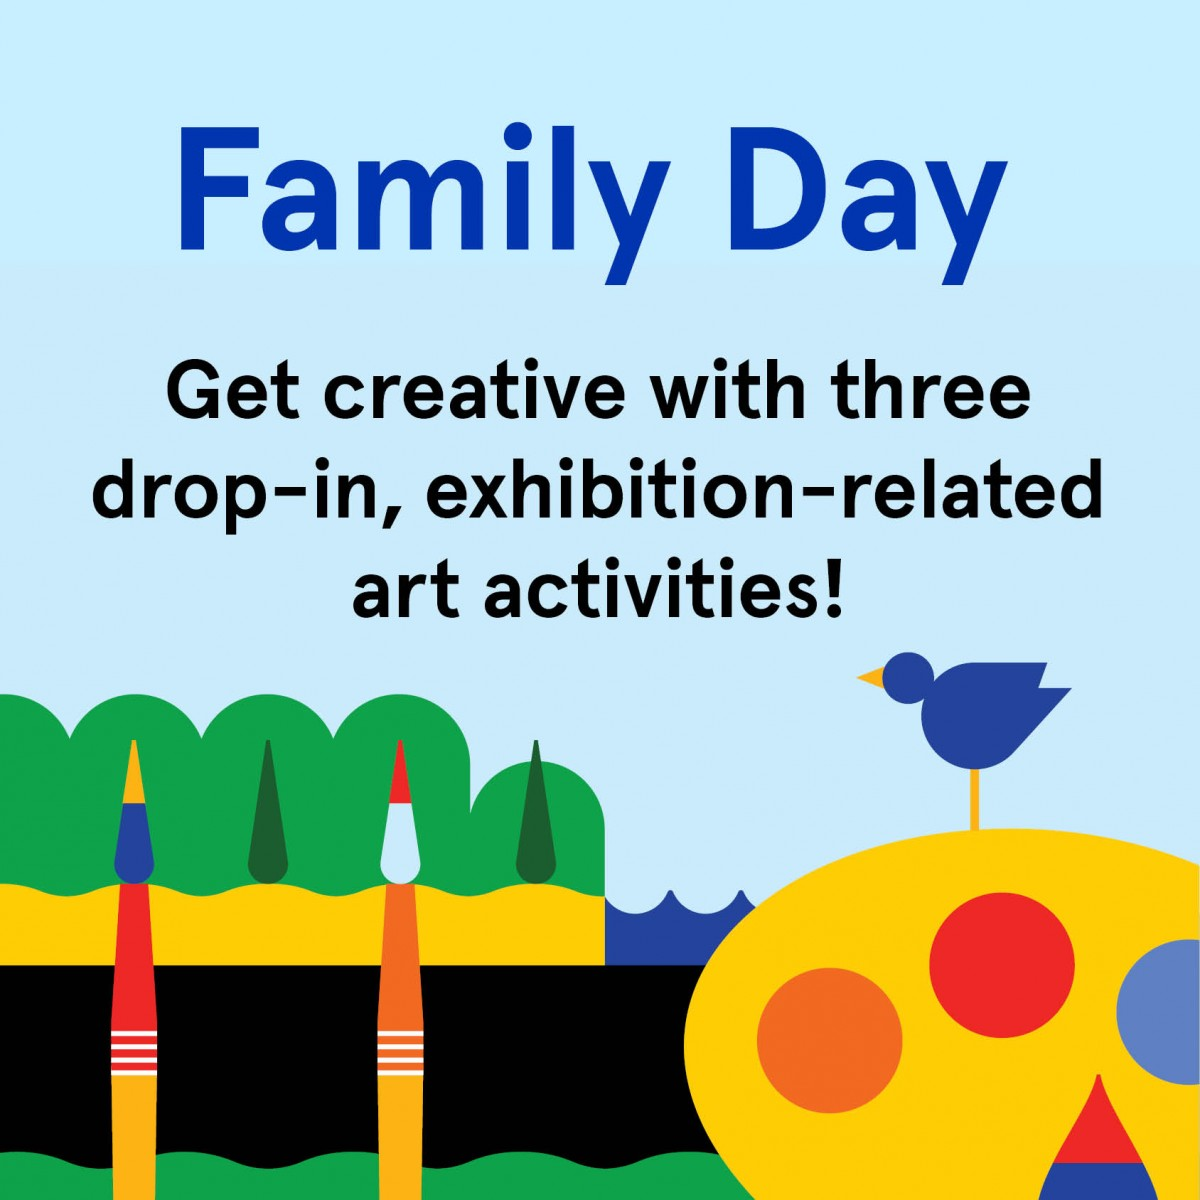 Family Day at Place des Arts